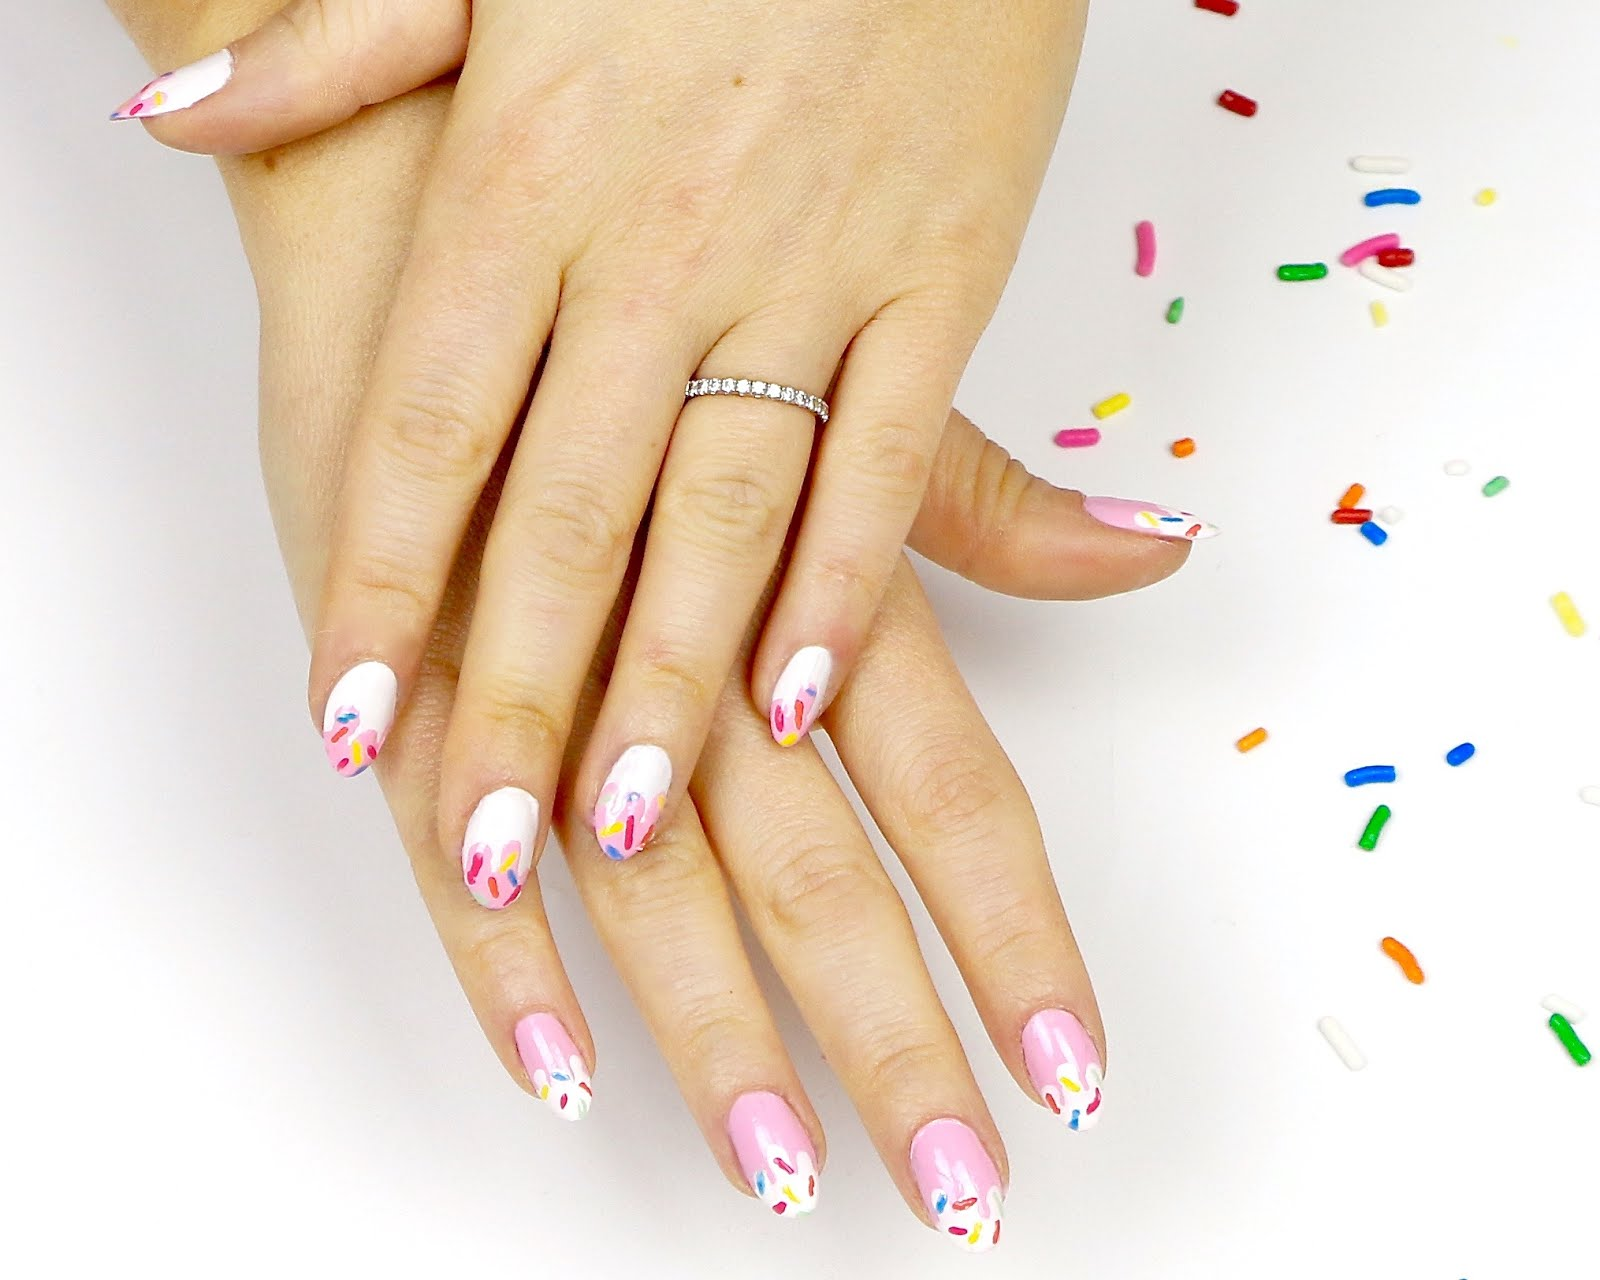 Video Sprinkle Drip Nail Art Design Lindsay Ann Bakes